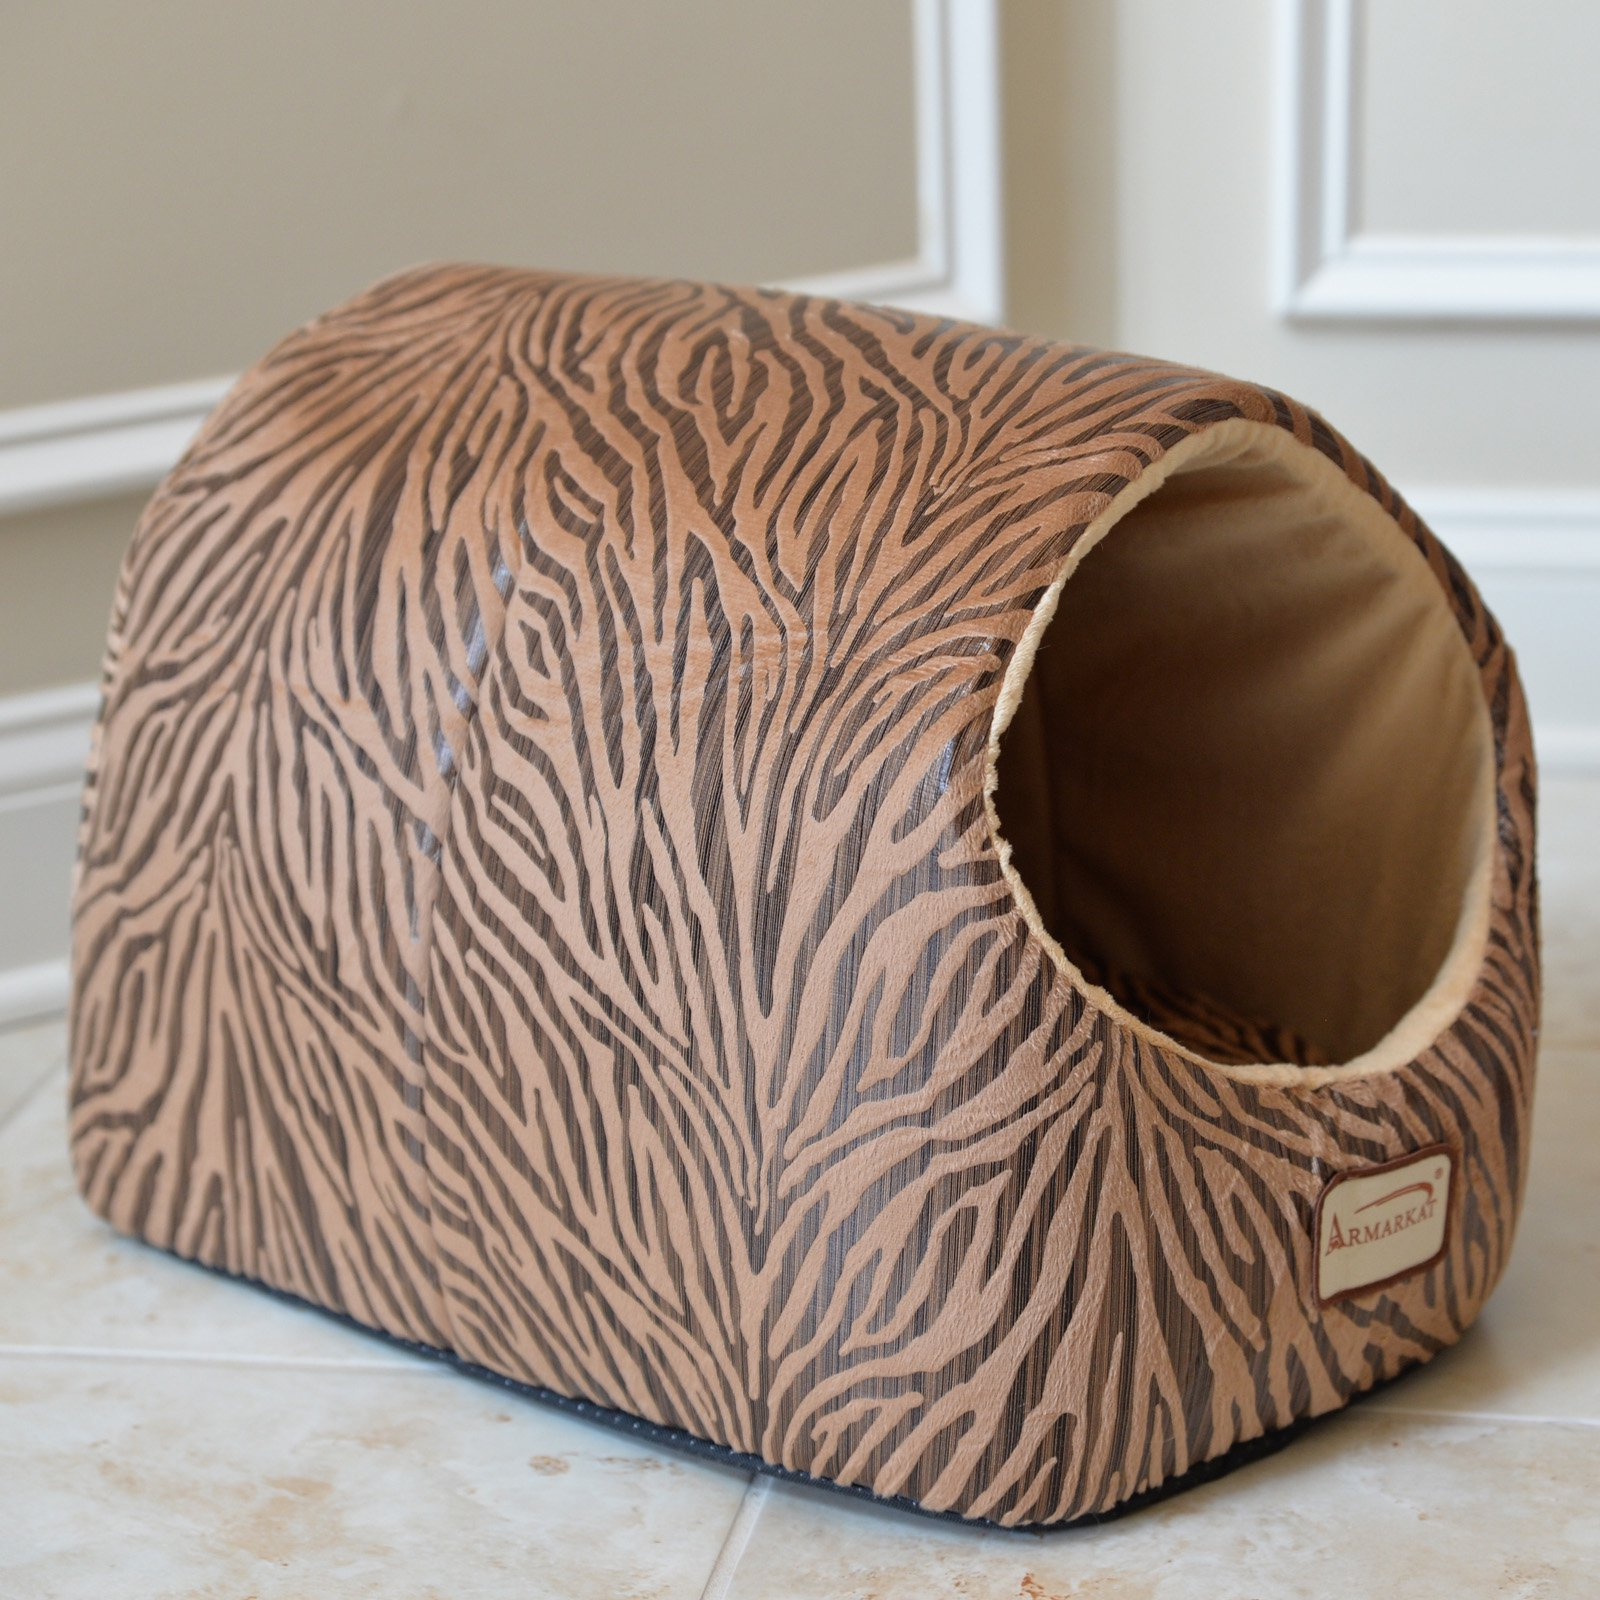 Armarkat Cat Bed, Bronzing and Beige, C11HBW/MH